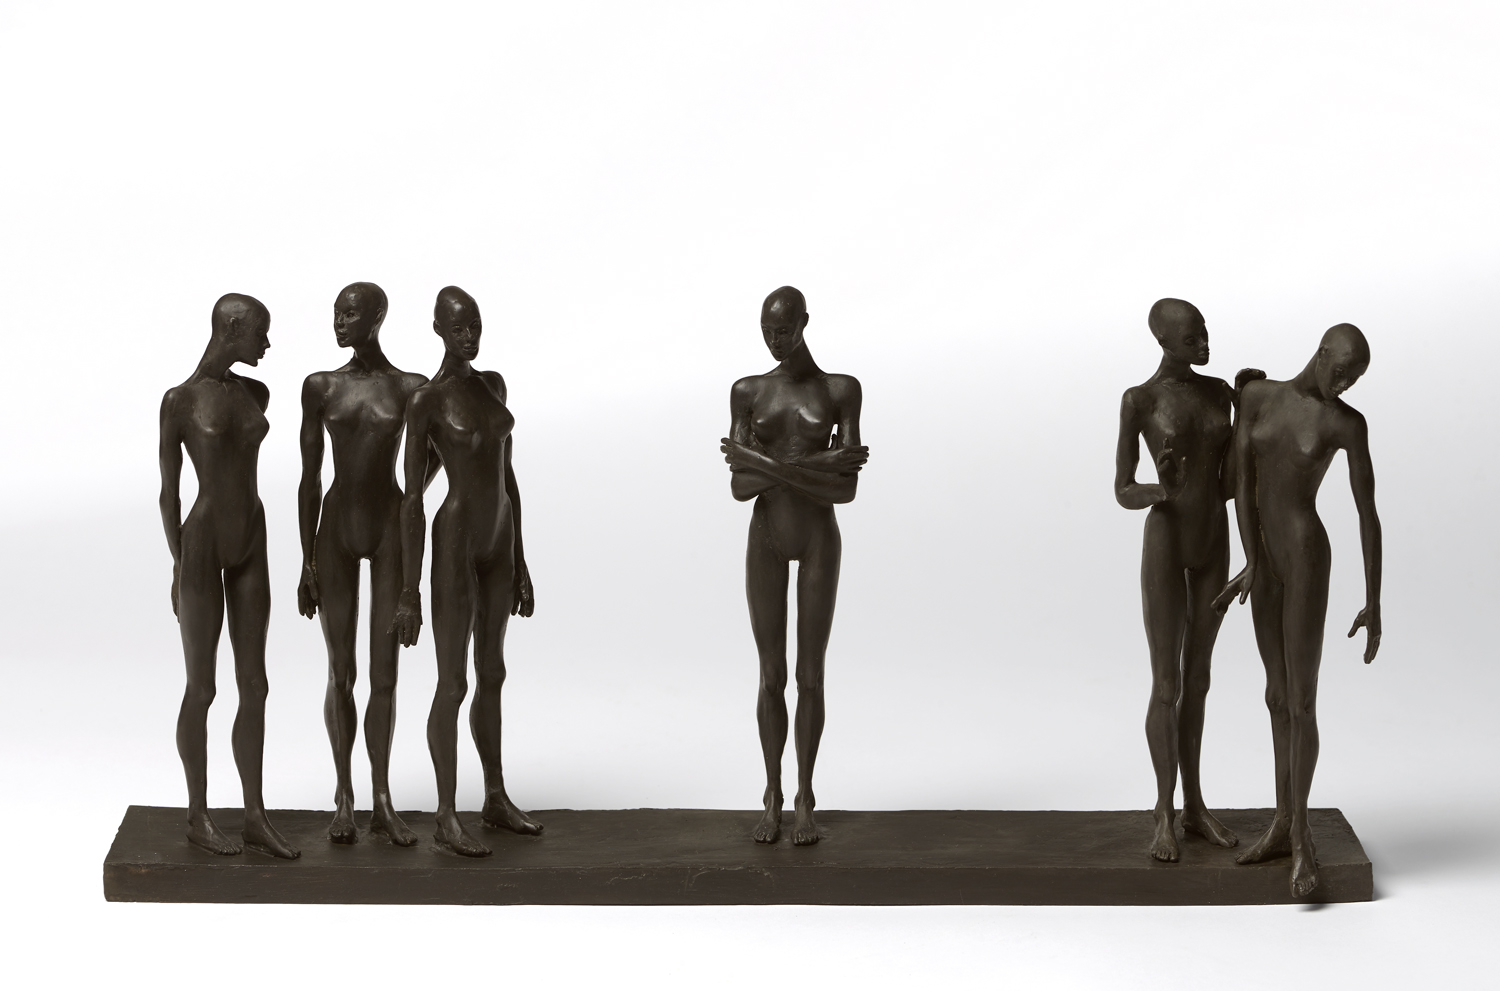 An Interesting Story , 2019  bronze 11 1/2 x 24 x 5 inches; 29.2 x 61 x 12.7 centimeters  $18,000.00